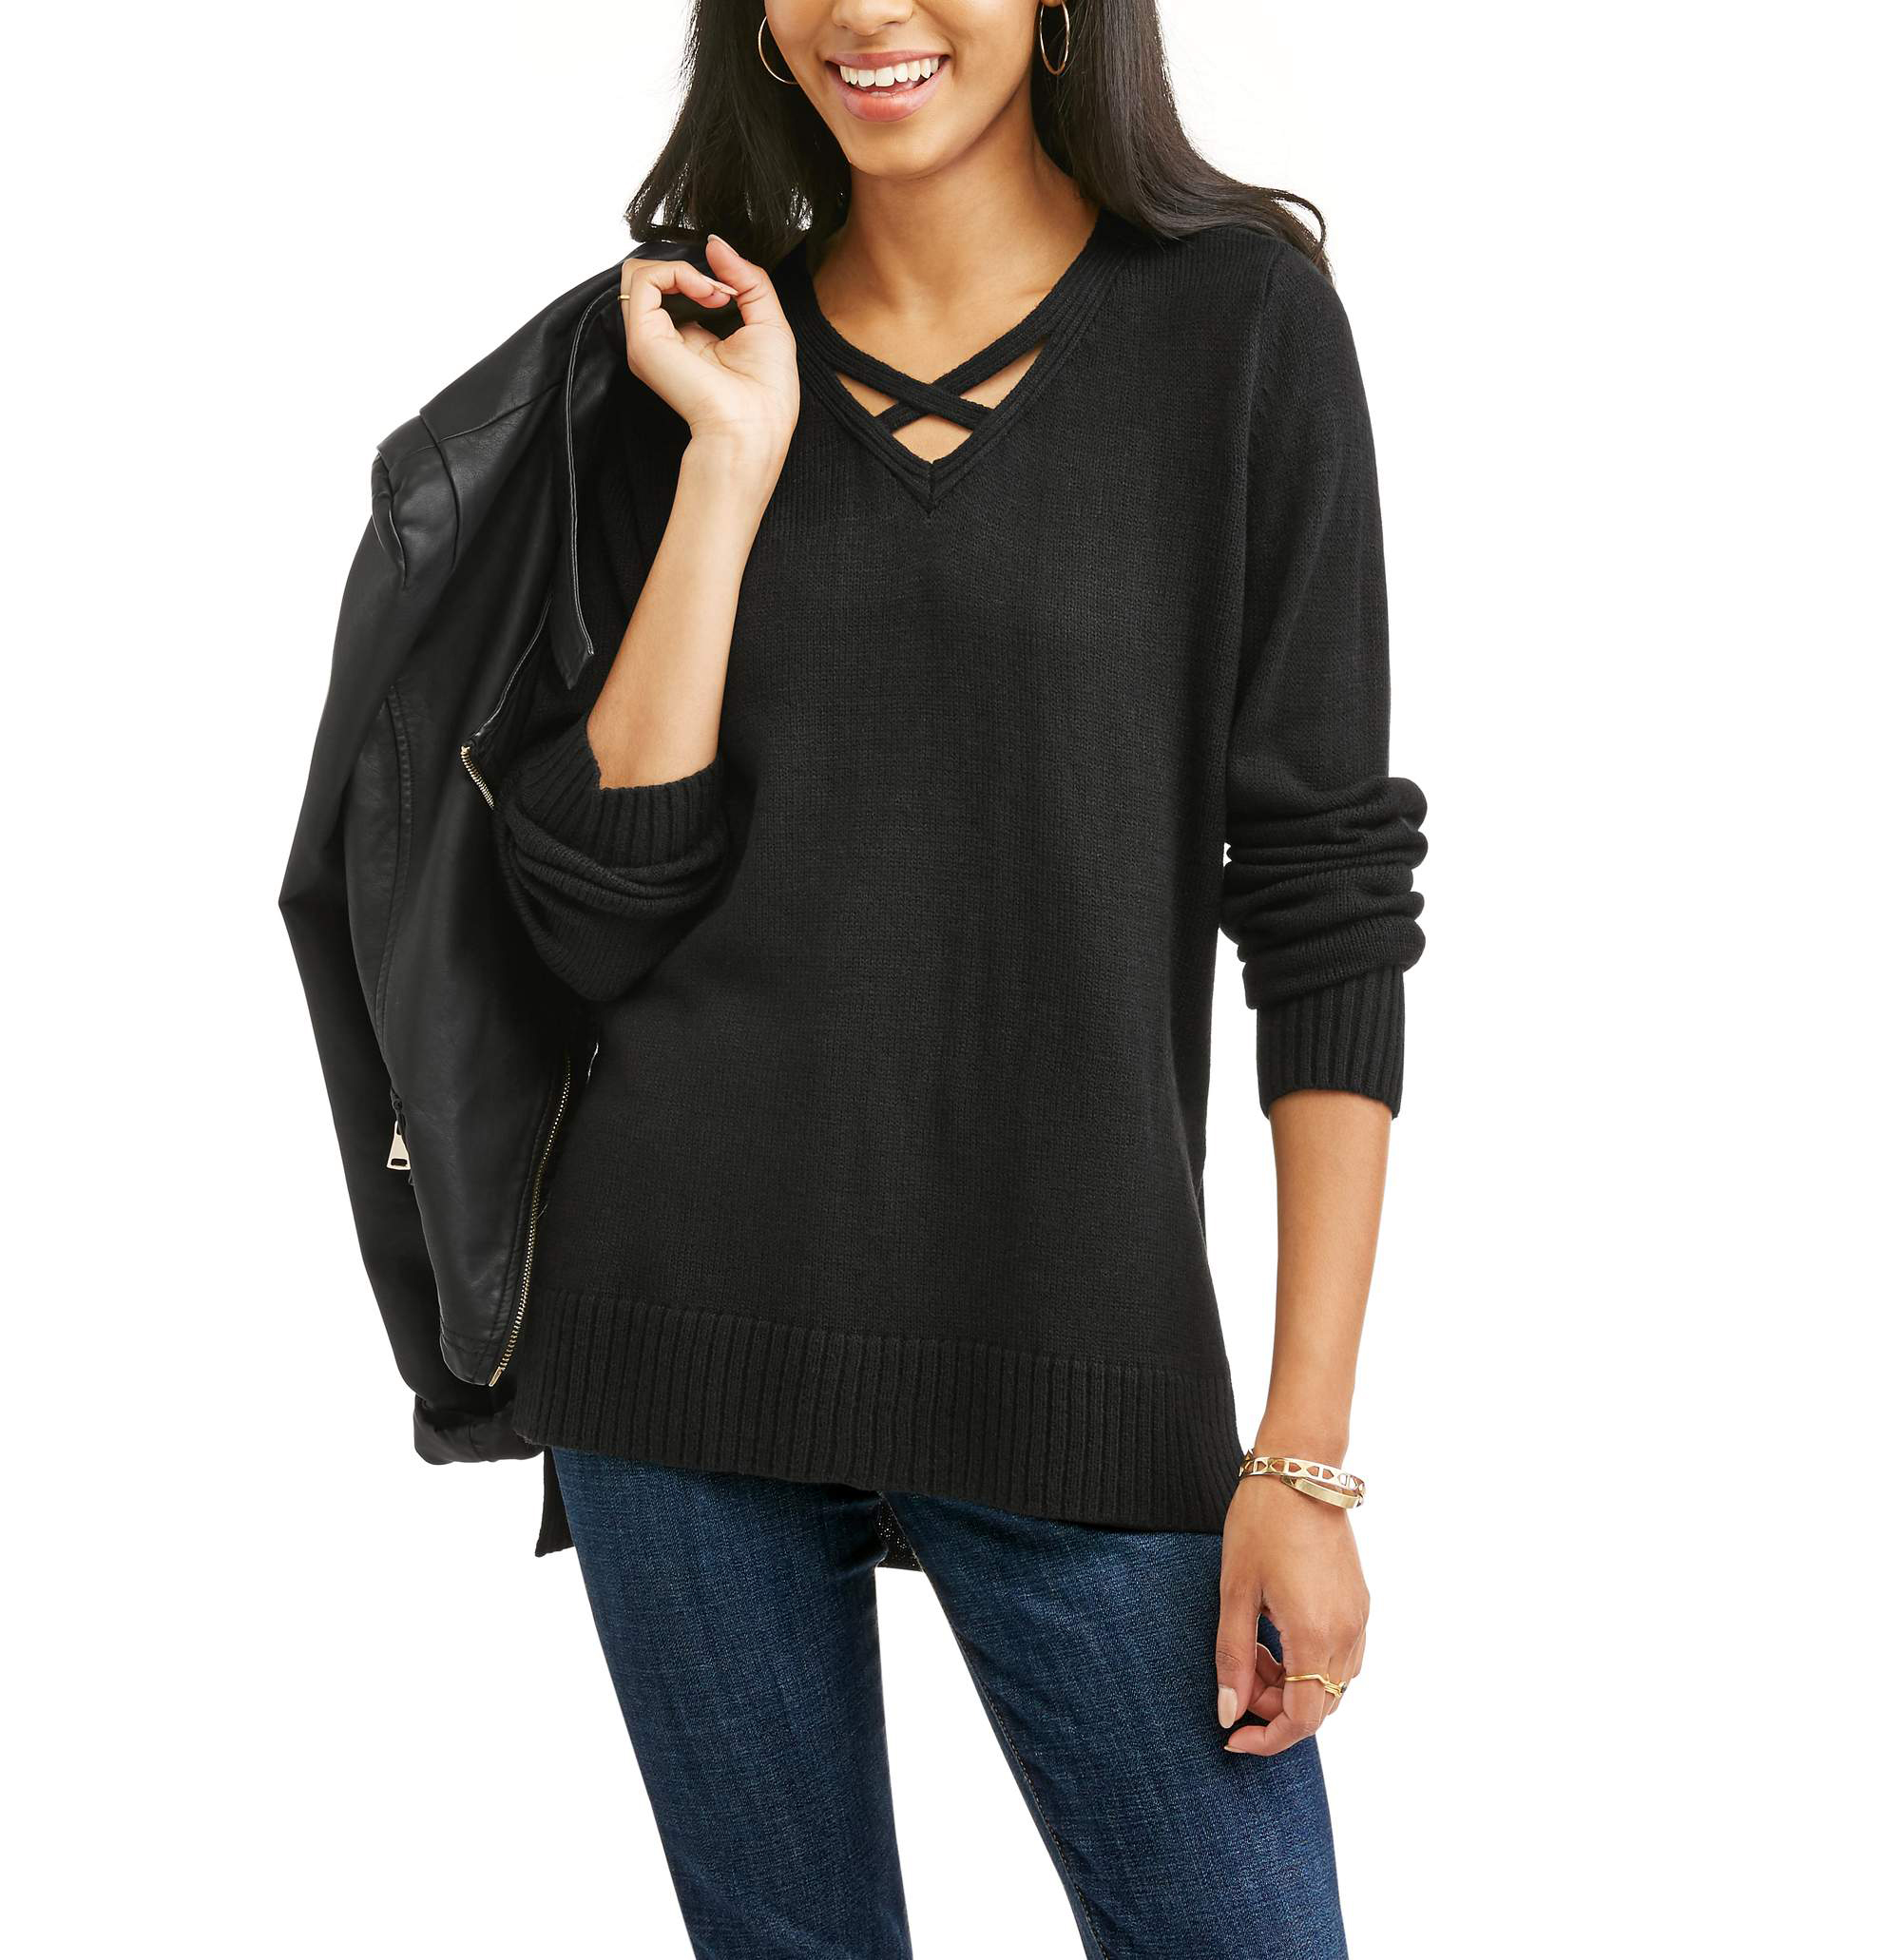 Willow And Wind Women S Sweater With Caging Onsales41 Com